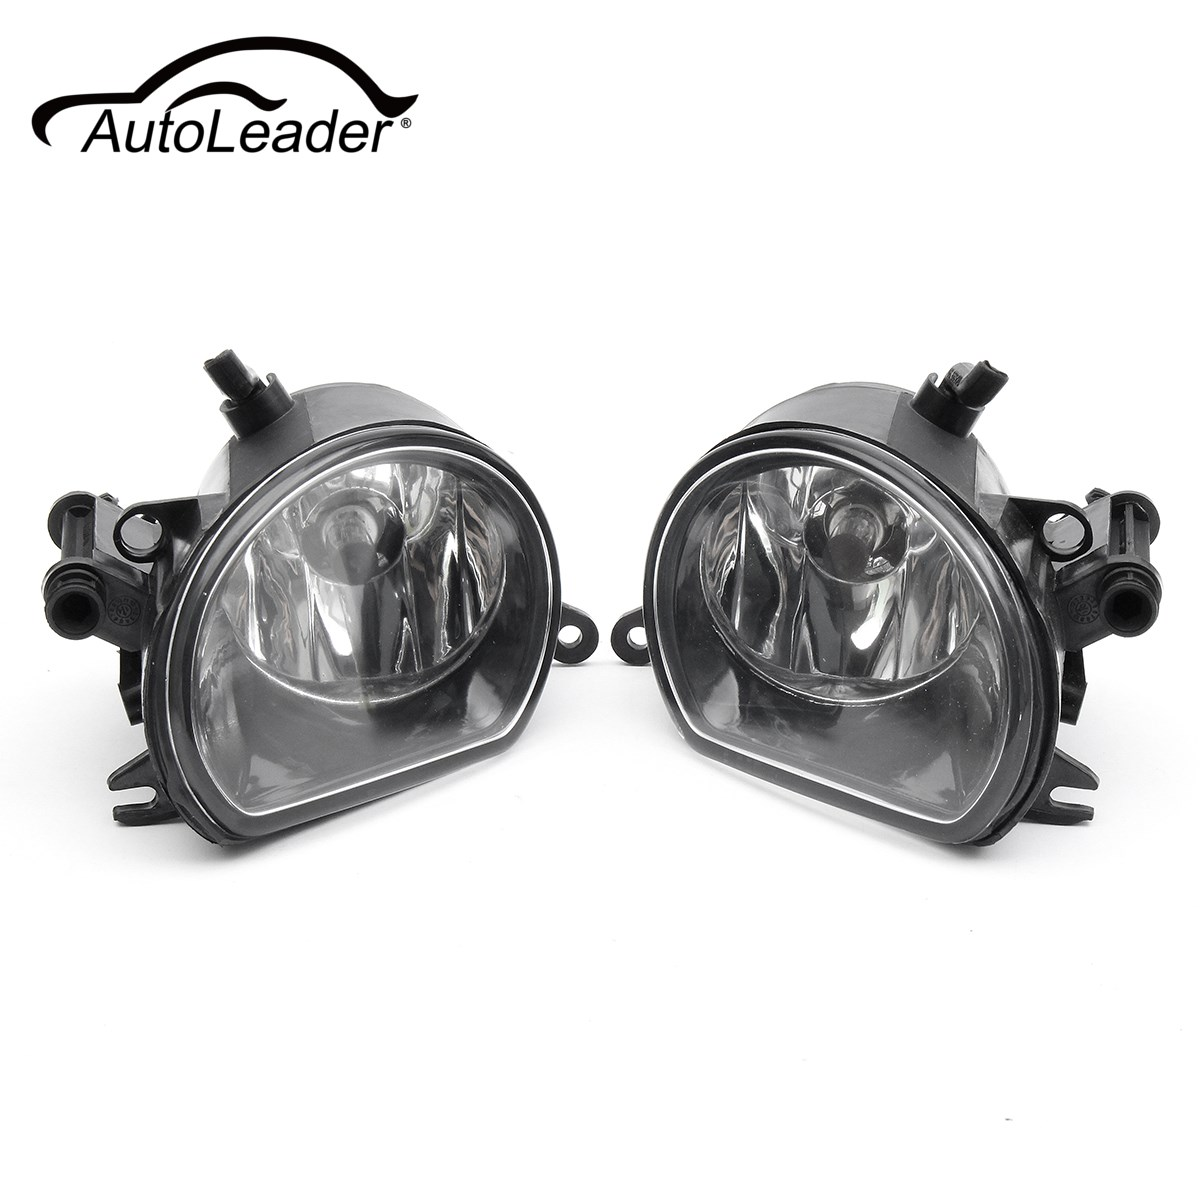 AutoLeader 1 Pair Left Right Clear Front Bumper LED H11 Fog Light Lamps Headlight For AUDI Q7 2010 2011 2012 2013 2014 2015 2pcs free shipping for vw polo 6r vento derby 2009 2010 2011 2012 2013 2014 new front led fog lamp fog light left and right